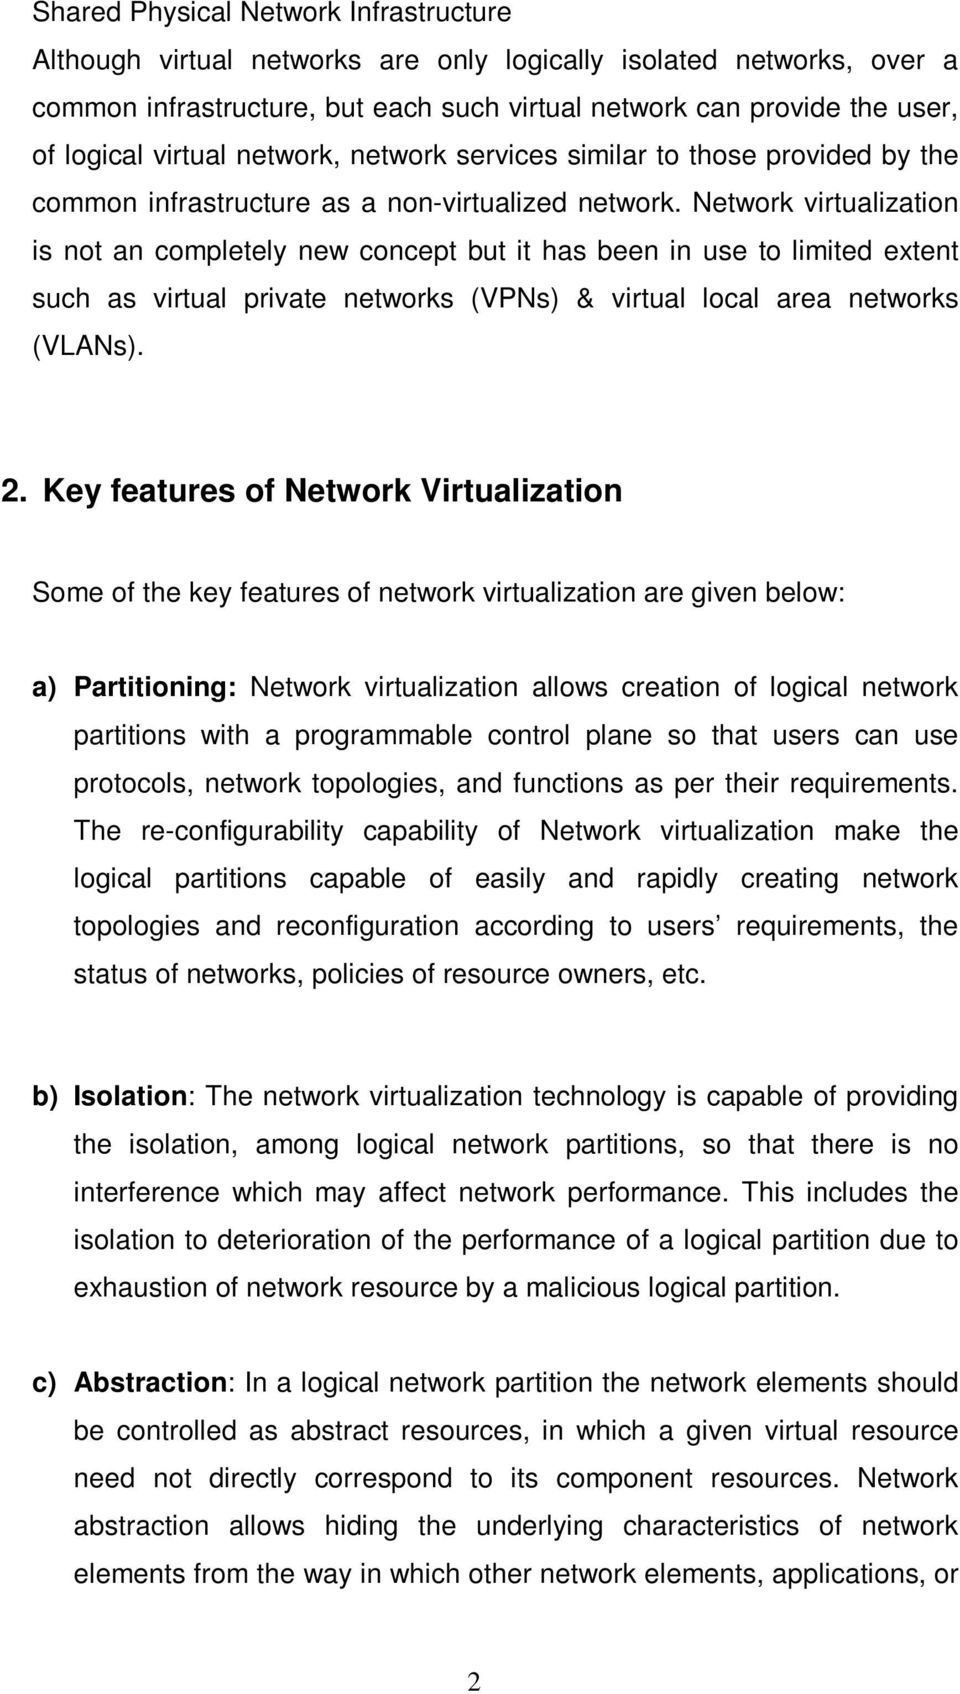 Network virtualization is not an completely new concept but it has been in use to limited extent such as virtual private networks (VPNs) & virtual local area networks (VLANs). 2.